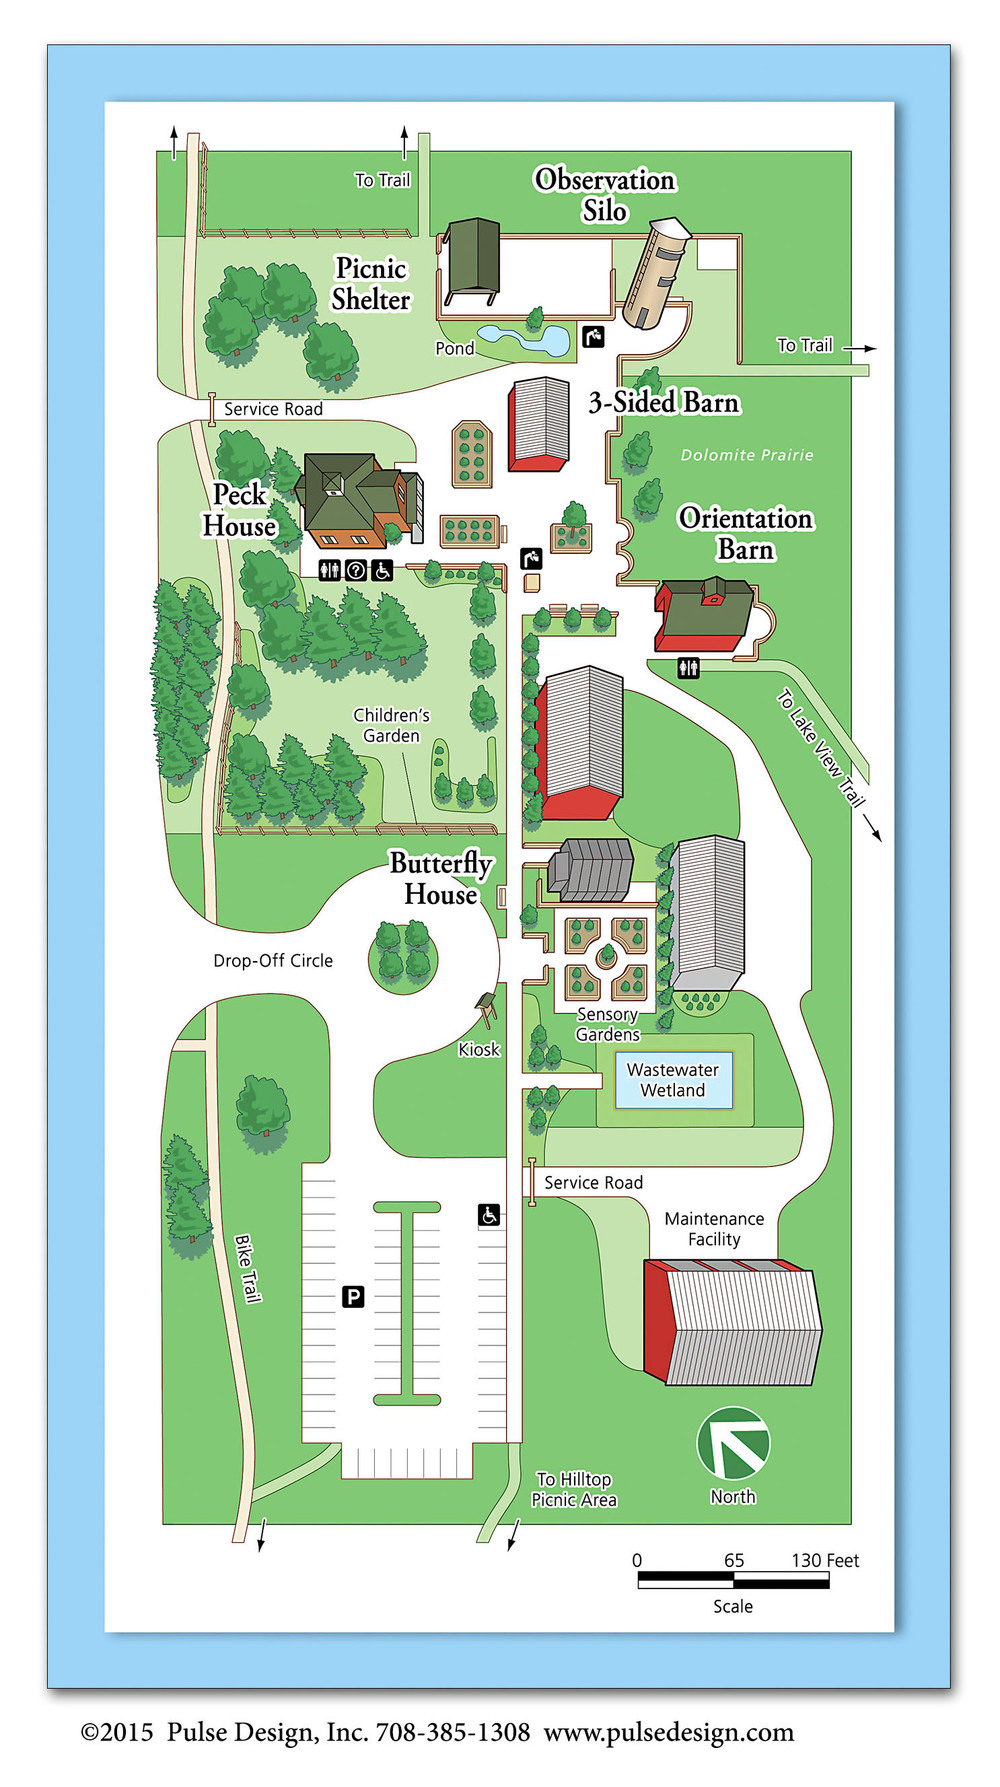 map-peck-farm-park-closeup-pulse-design-inc.jpg